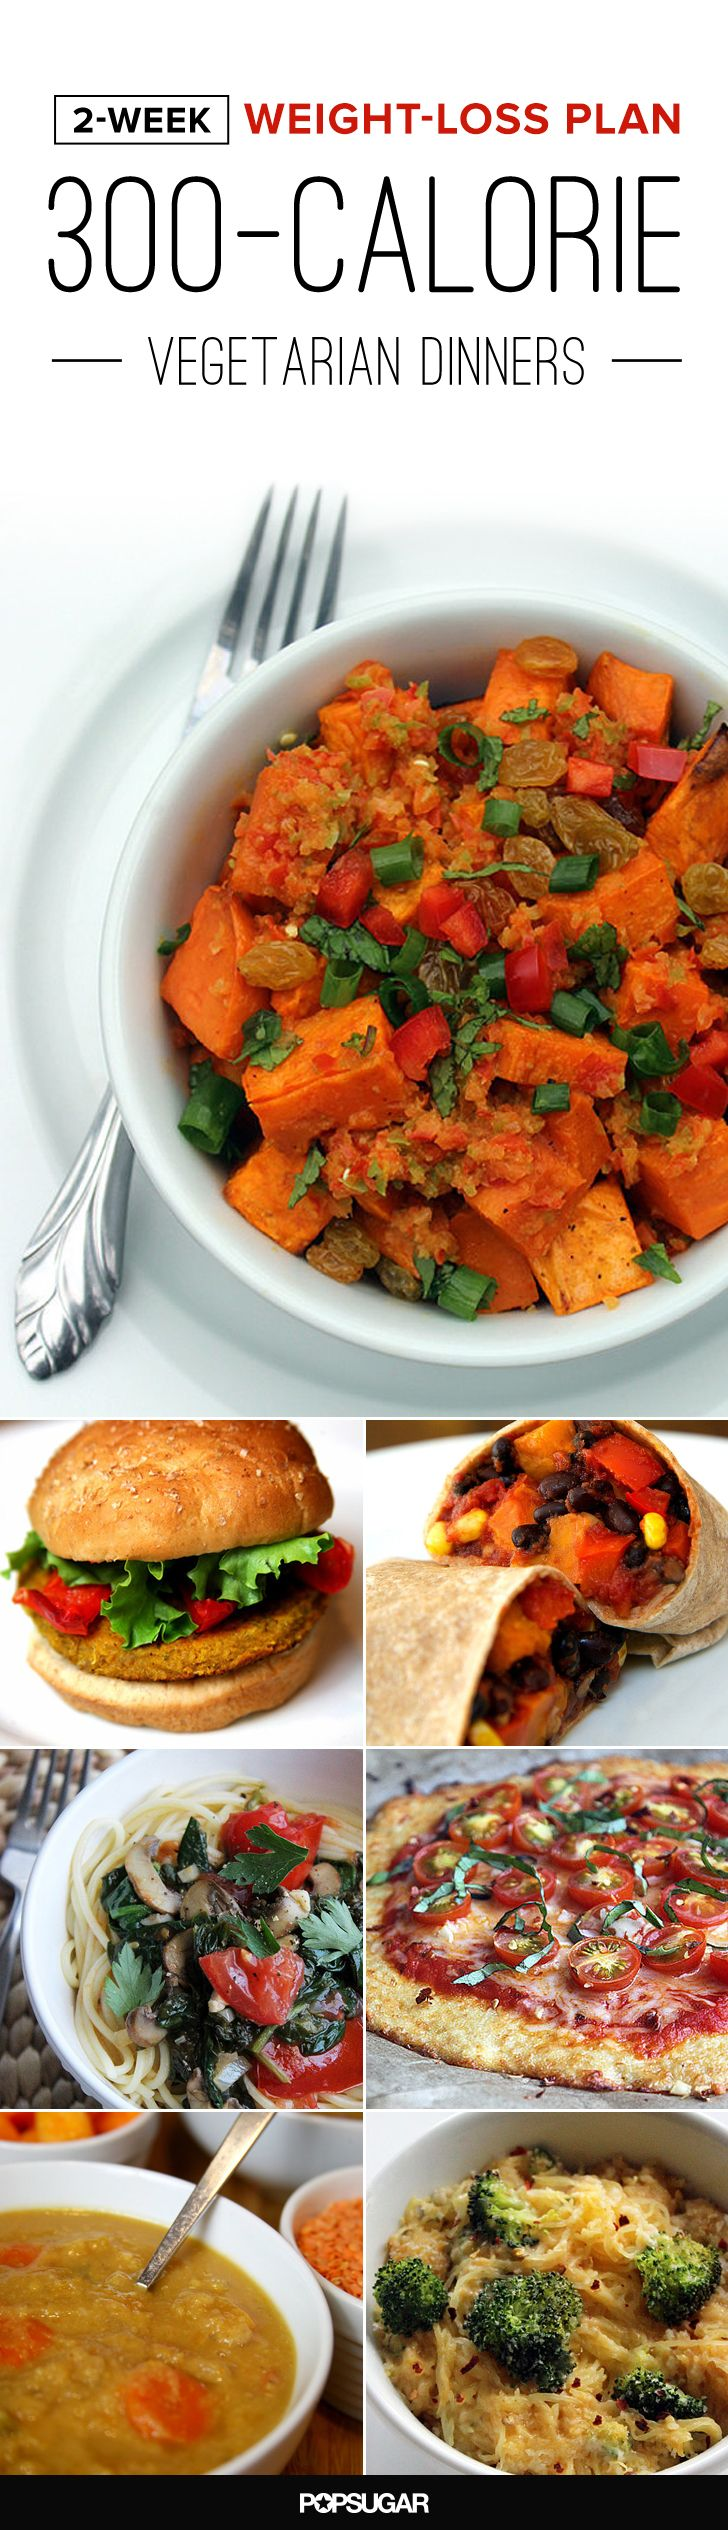 2 weeks of healthy vegetarian dinners